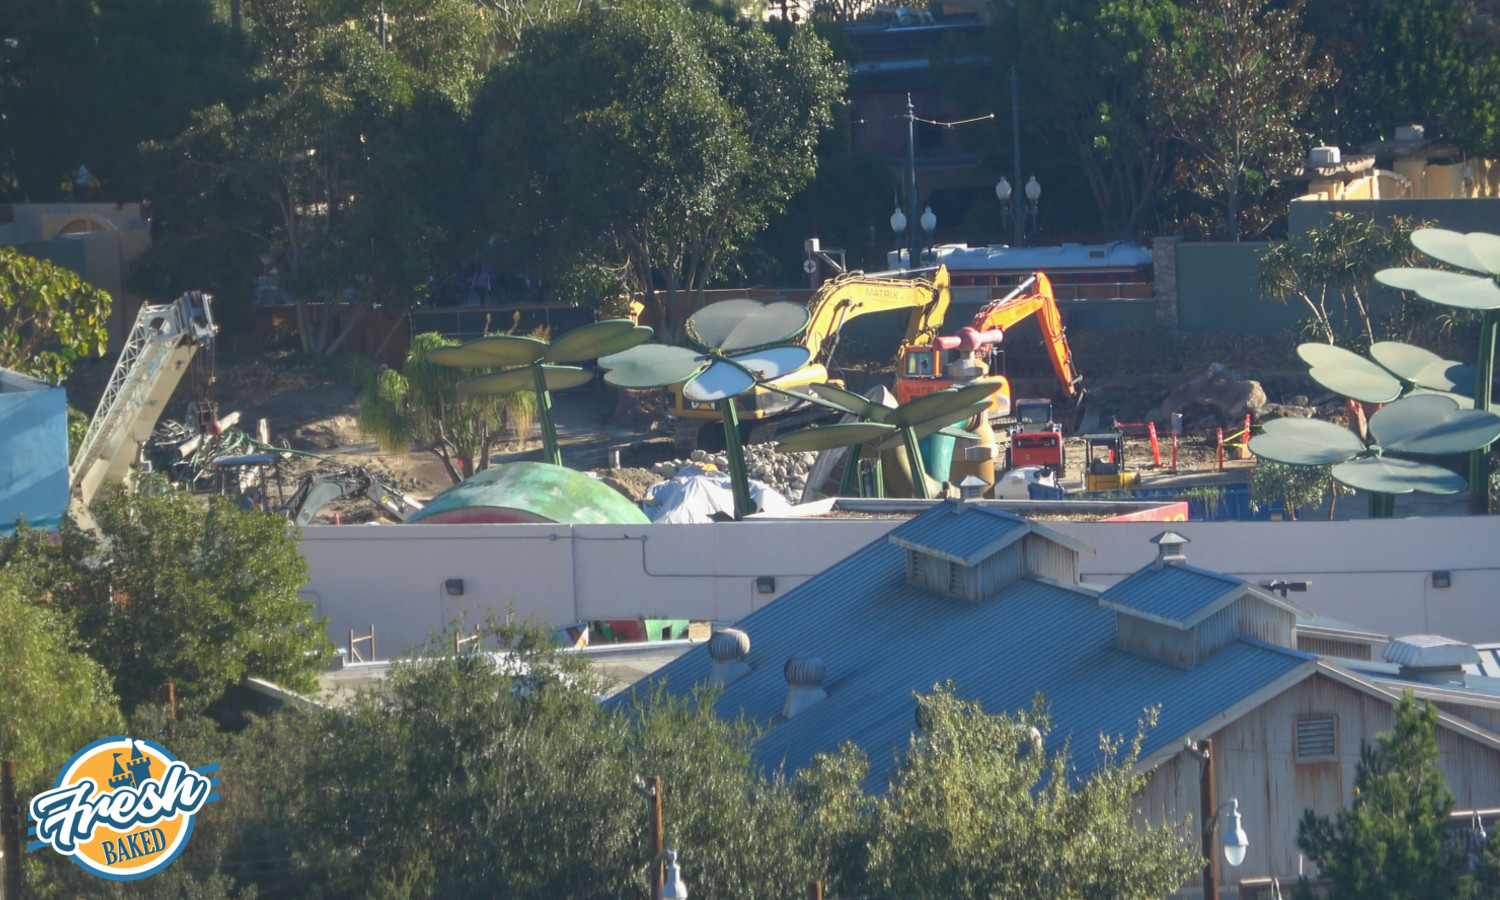 Marvel Land On The Way Disneyland Construction 2018 12 08